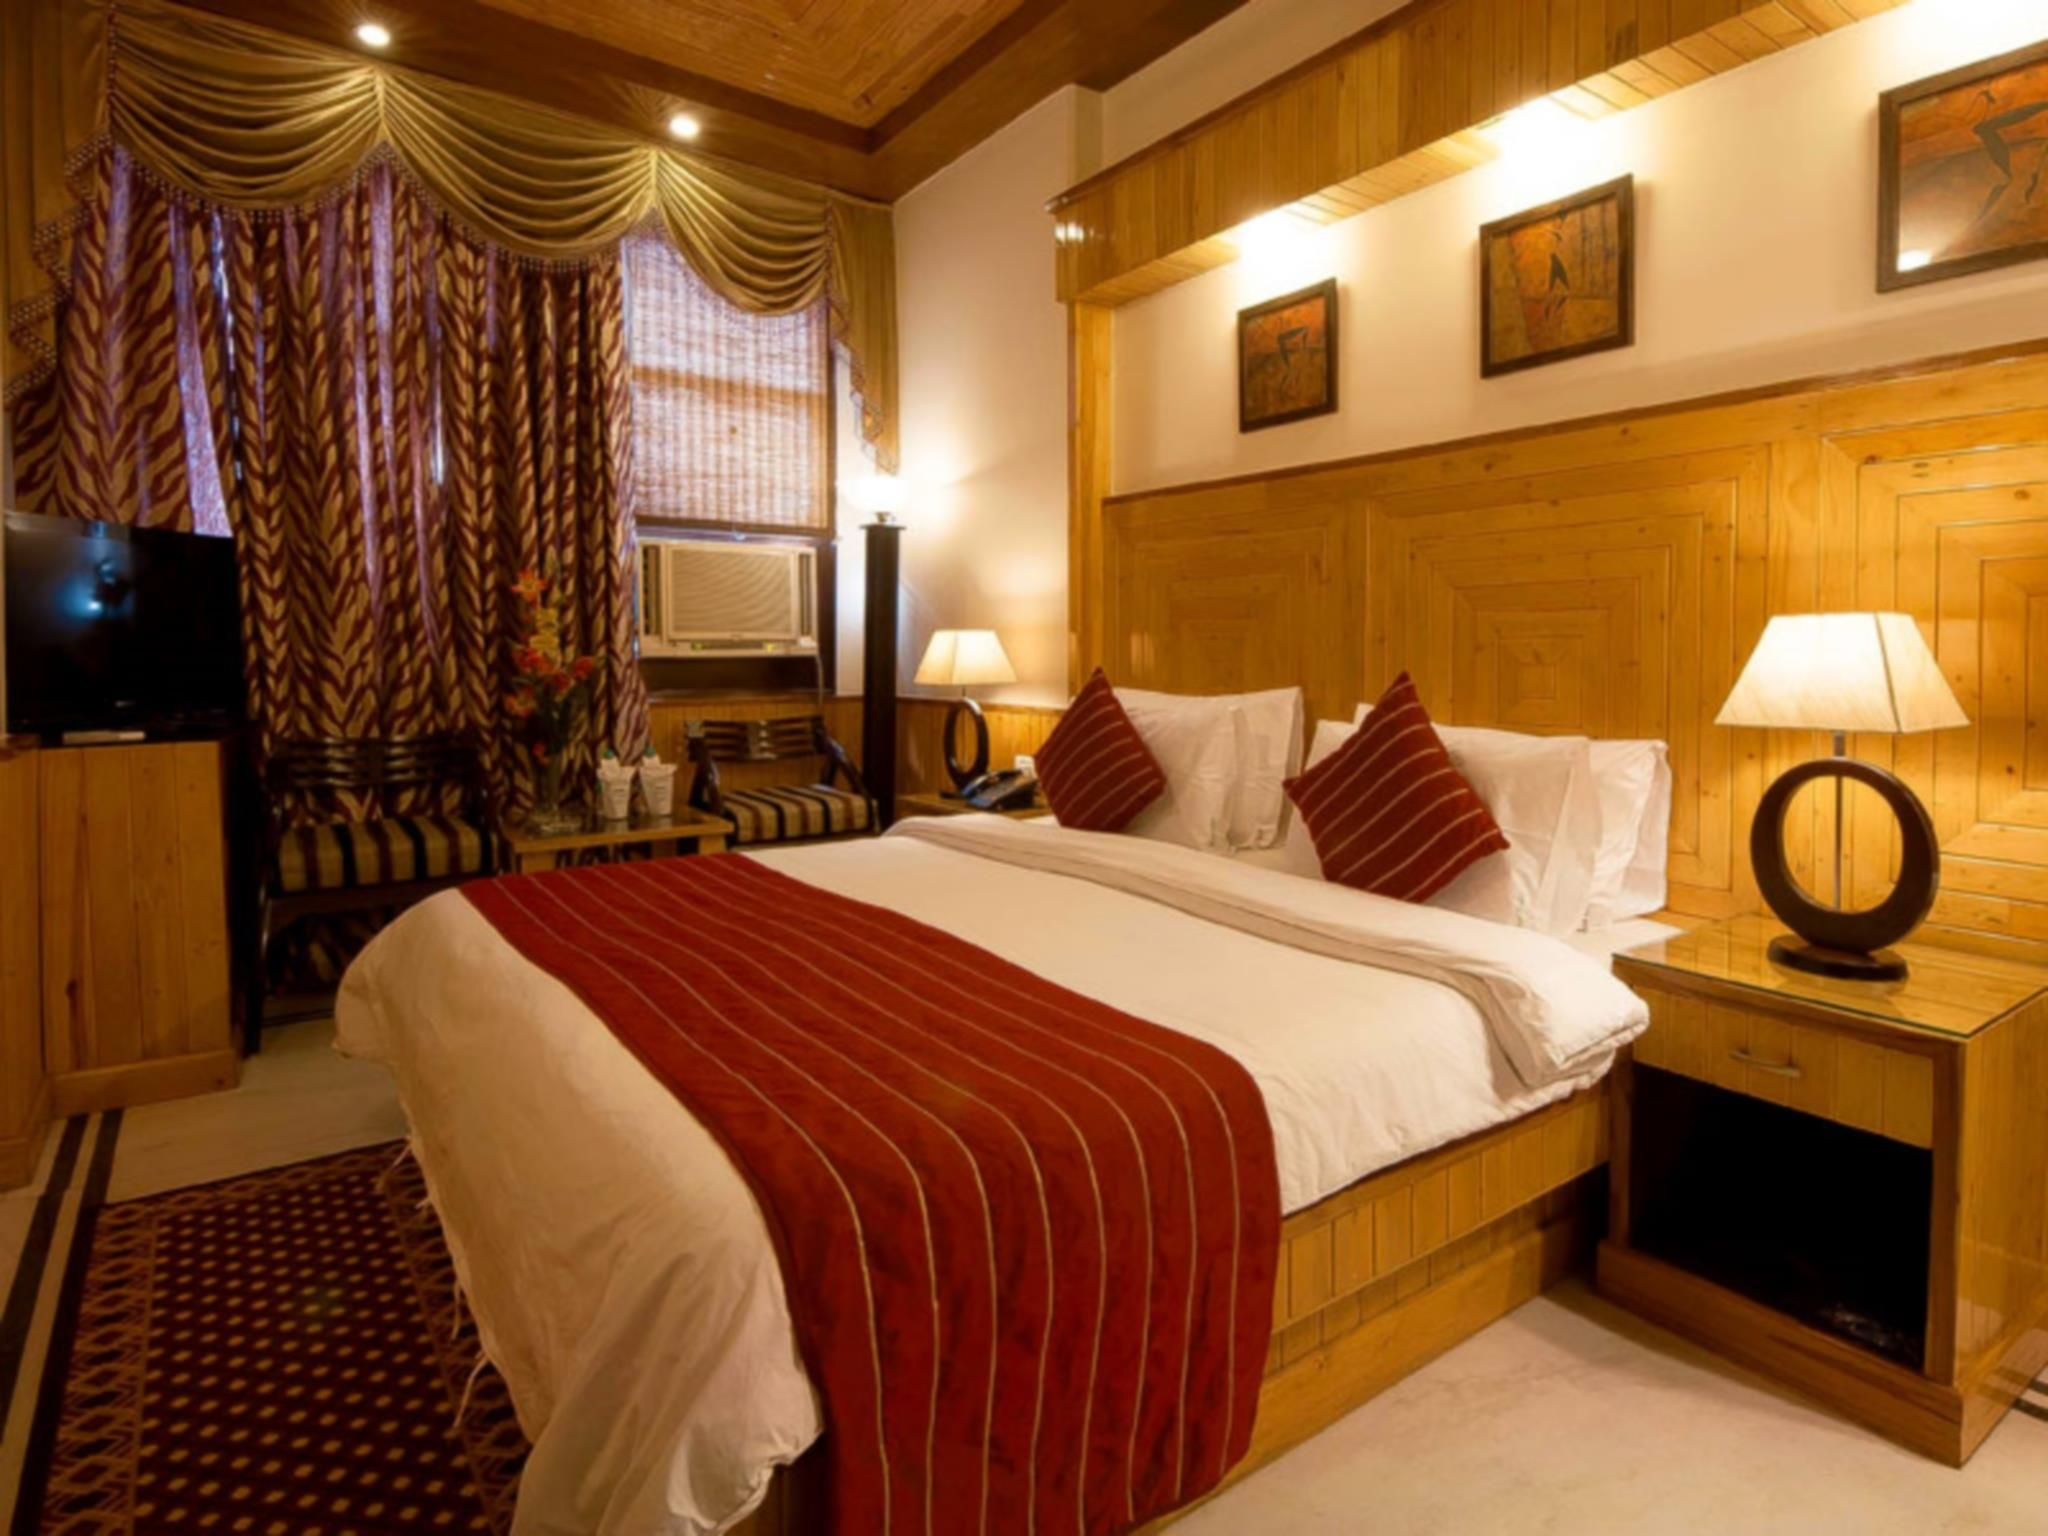 New Delhi and NCR Wood Castle Hotel India, Asia Located in